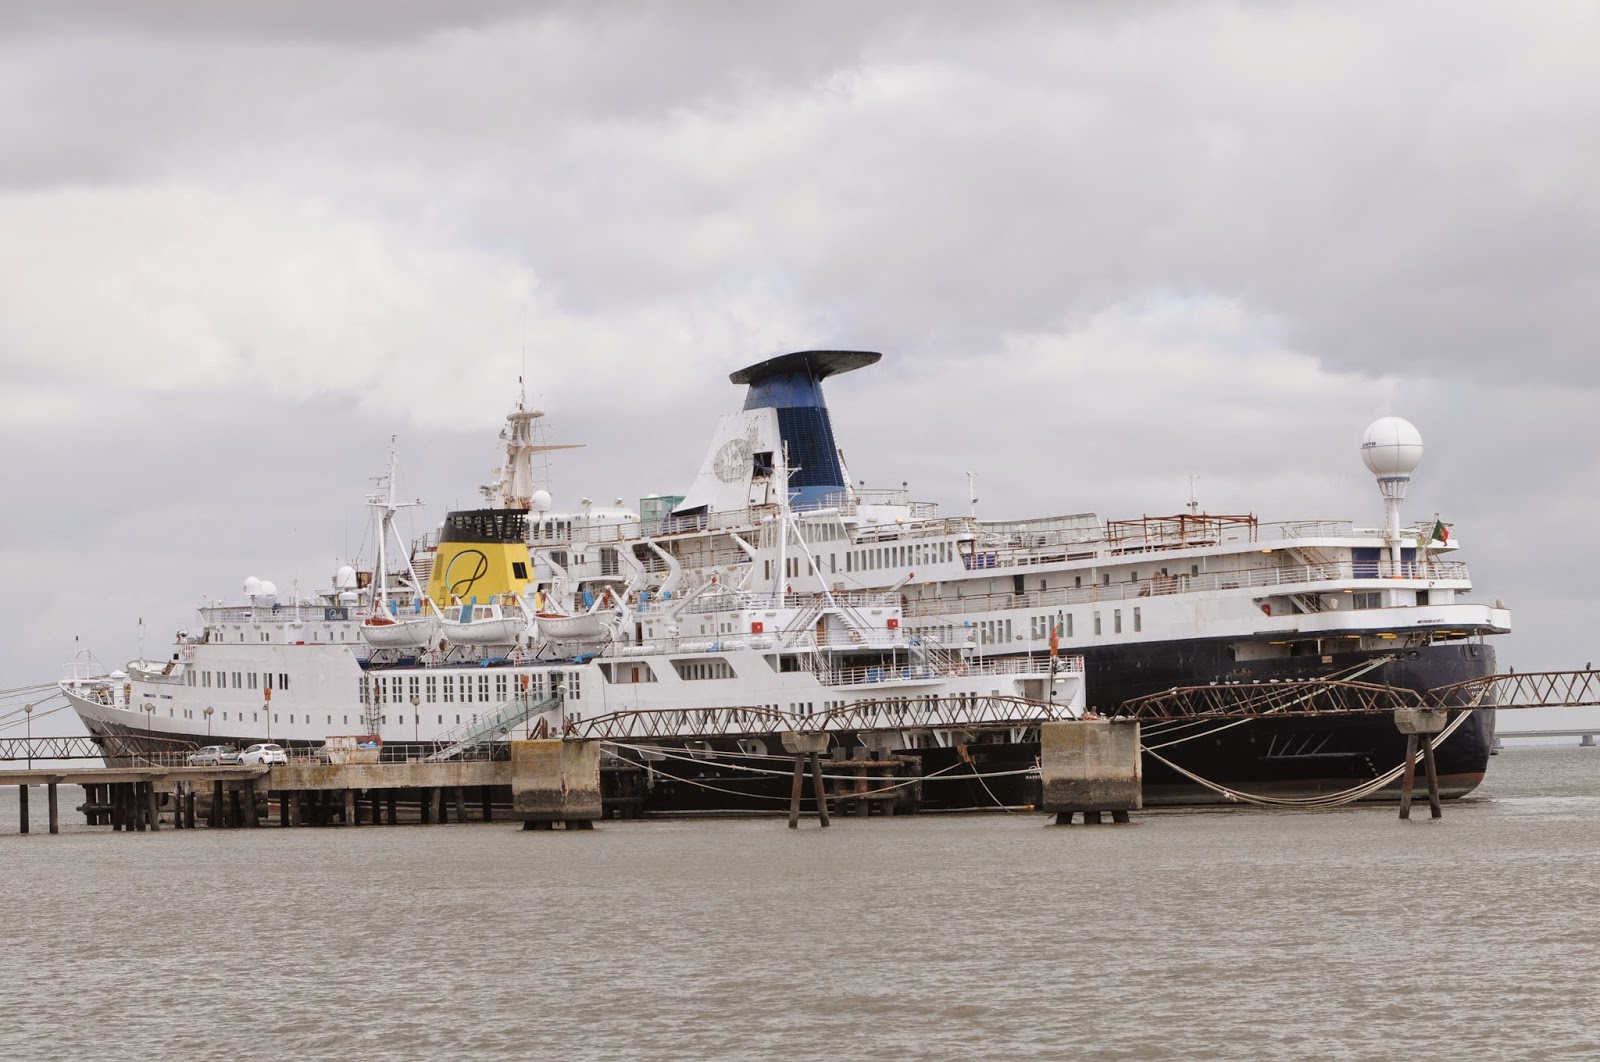 Cruiser M/S Lisboa to be dismantled in Turkey